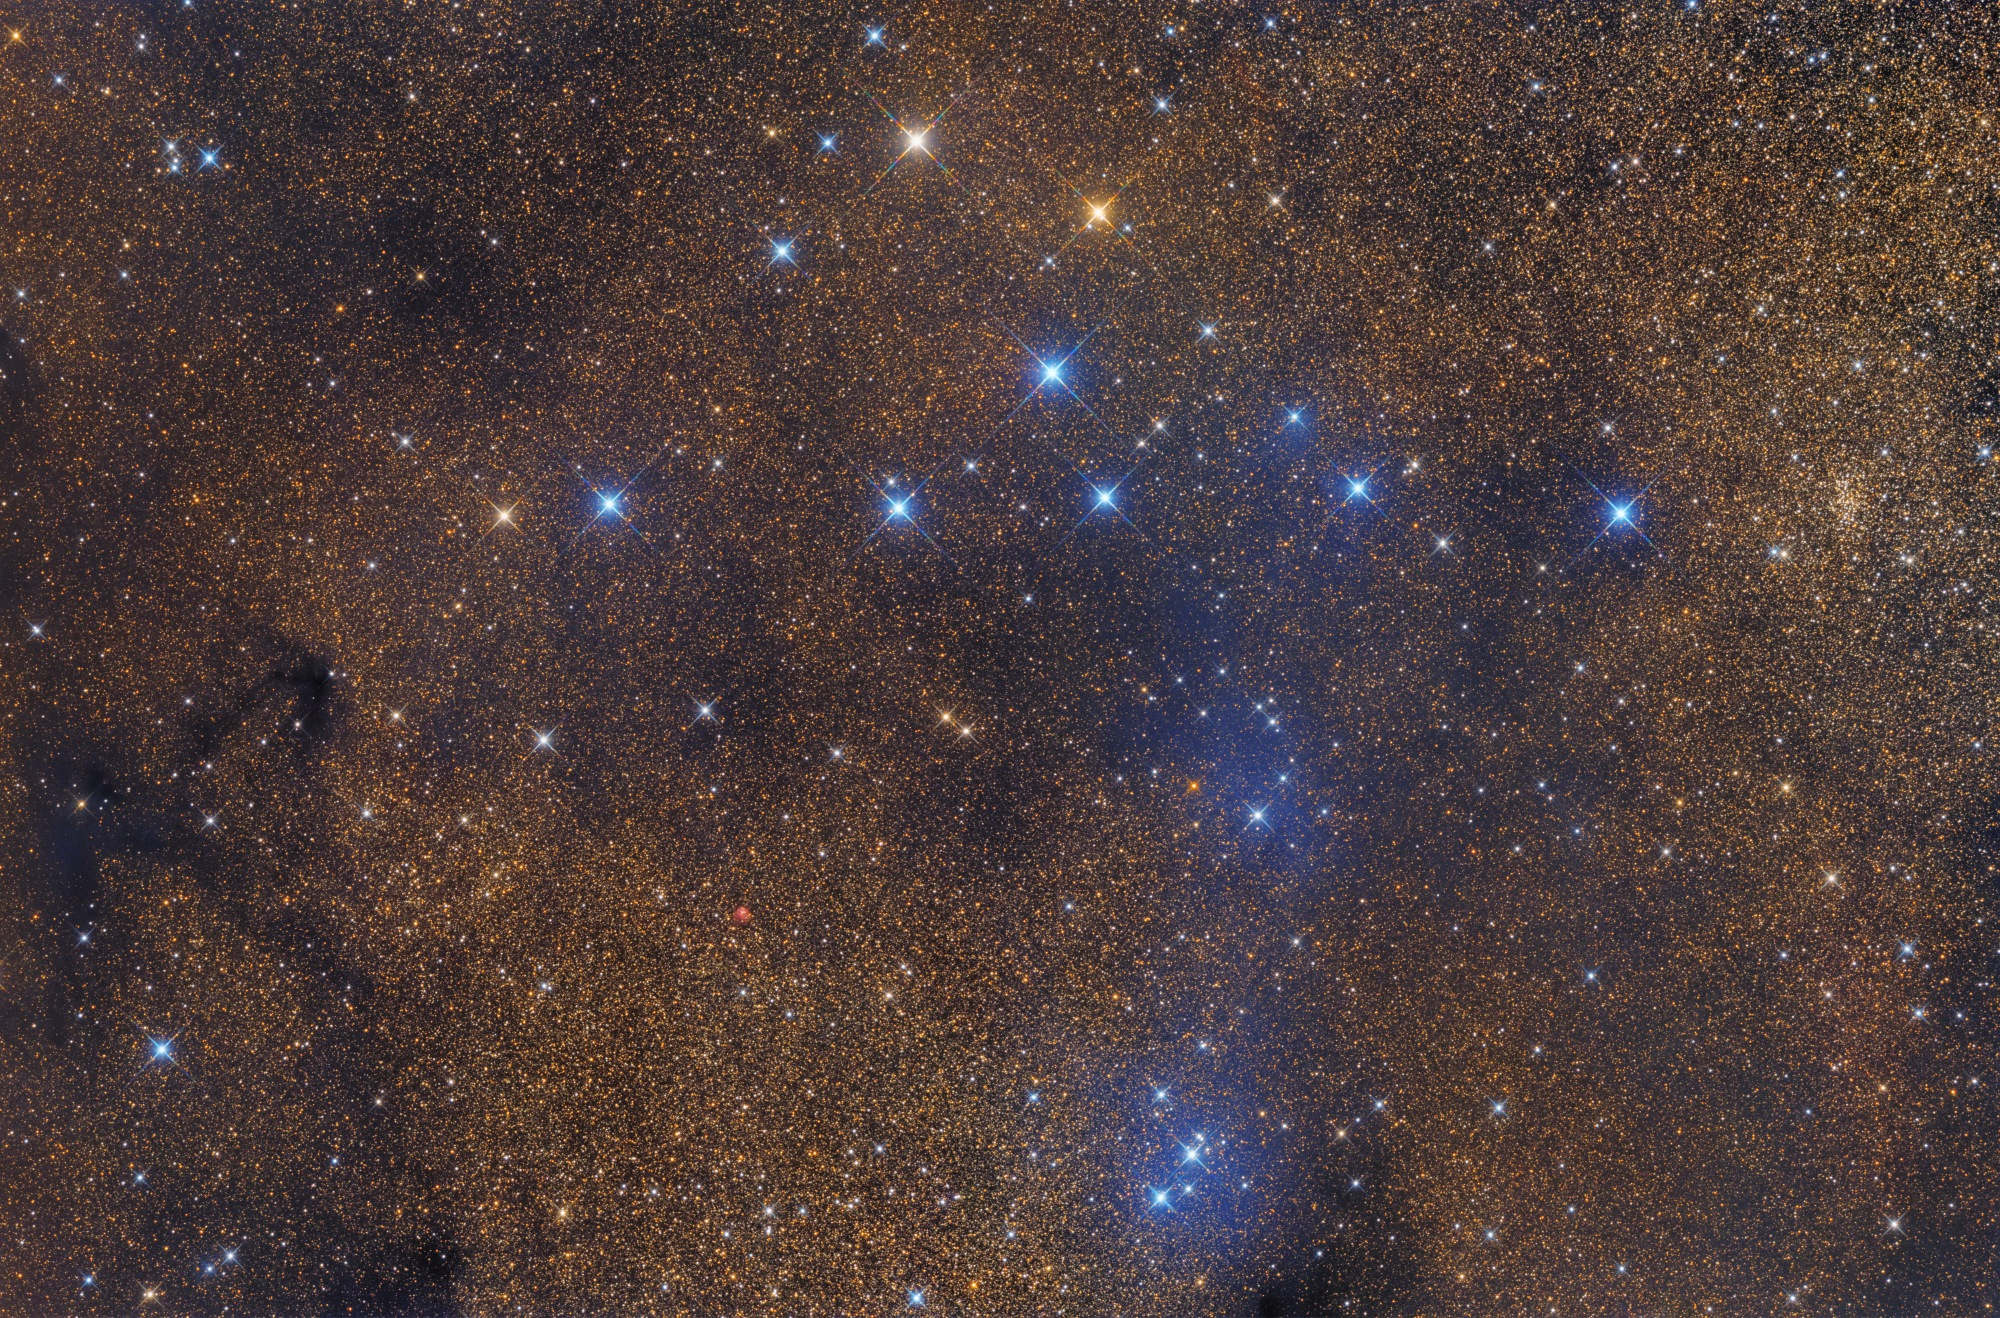 Insight Investment Astronomy Photographer of the Year 2019   Stars and Nebulae: An Ocean of Stars by Thomas Henne